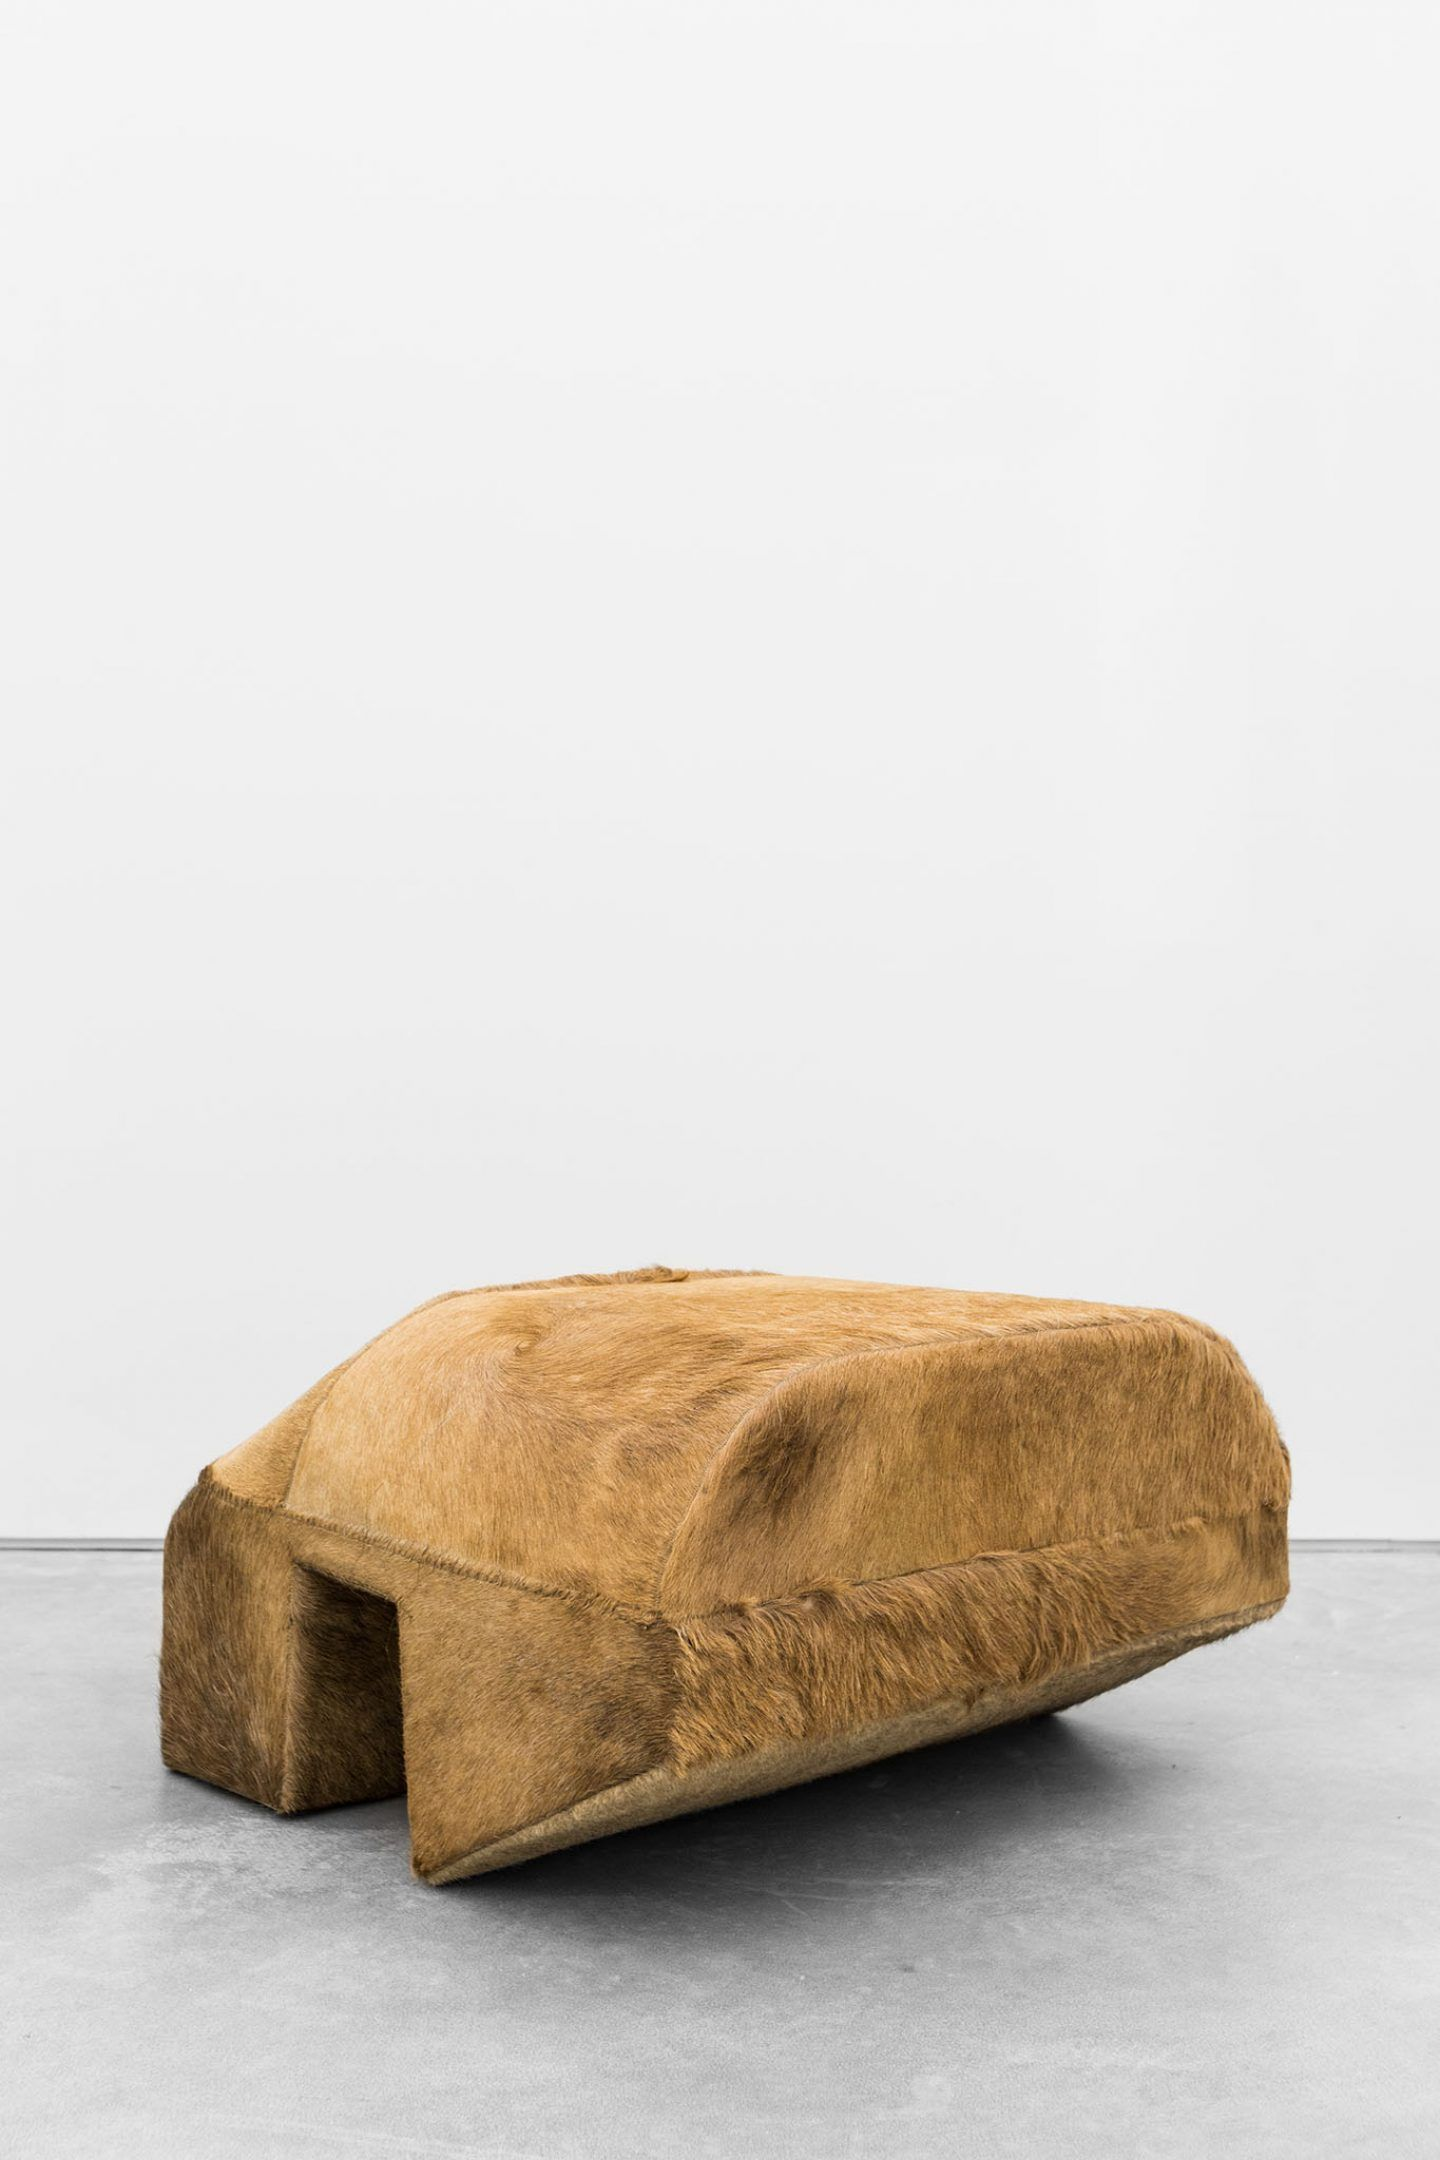 Rick Owens Furniture Finally Comes to Germany